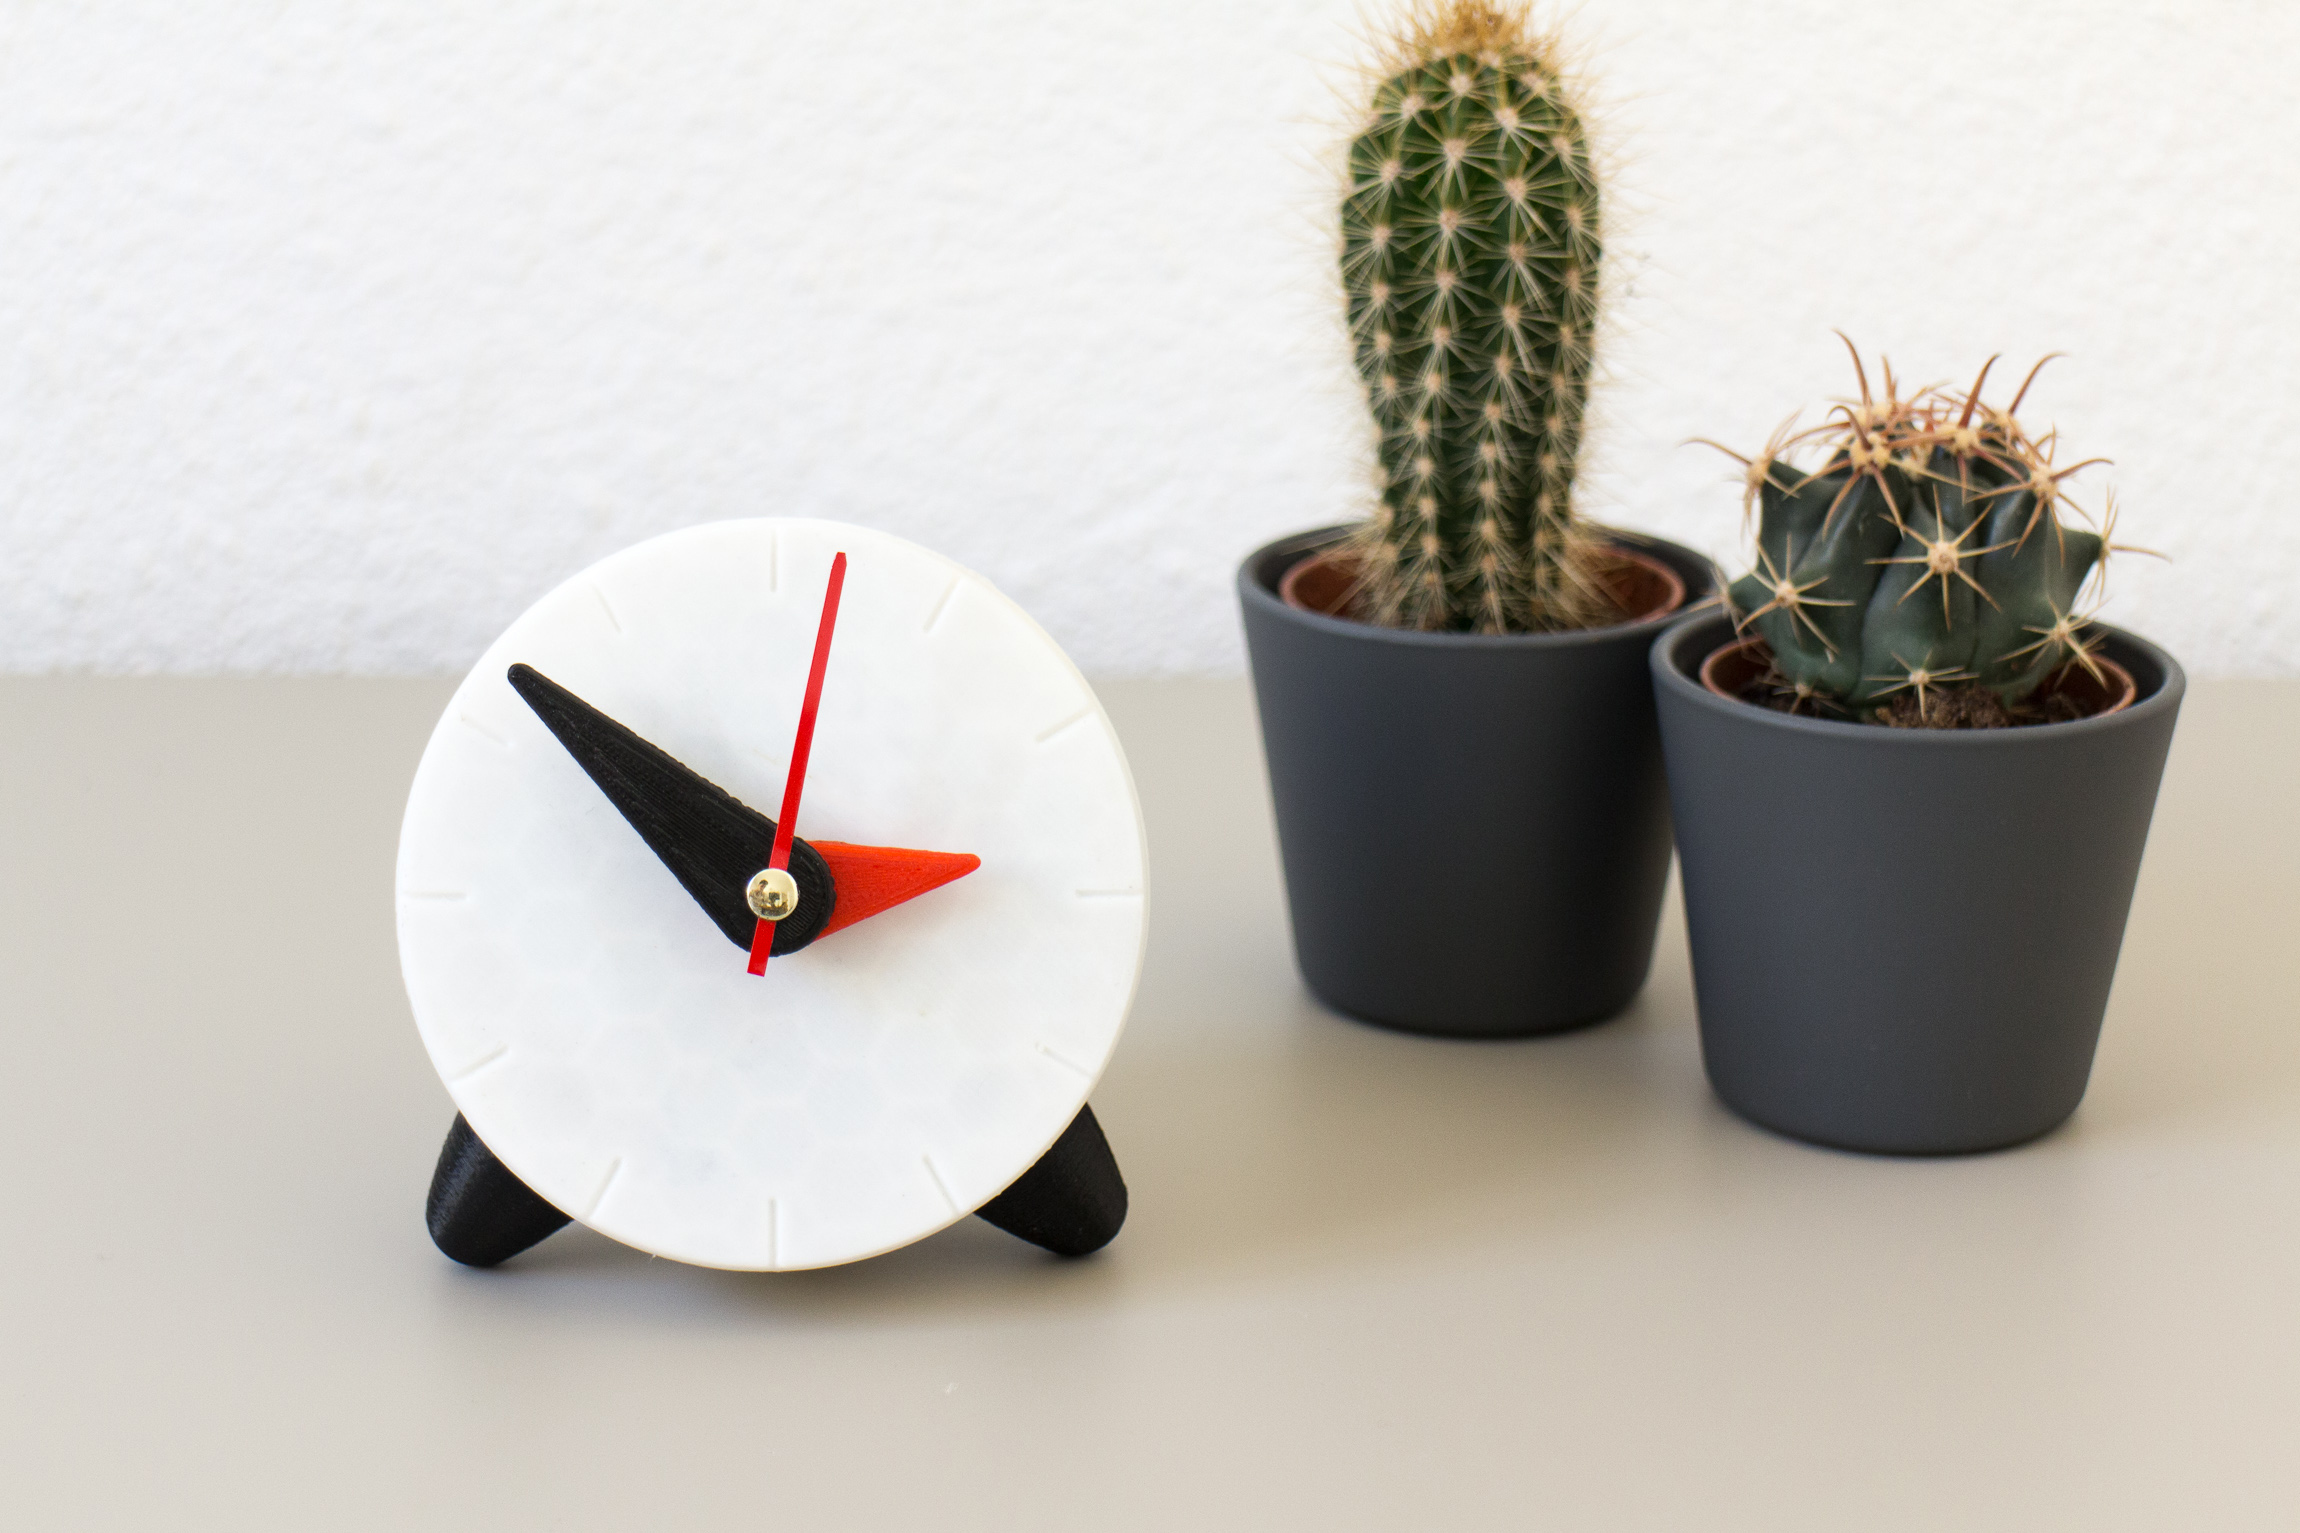 3D printed clock with plant